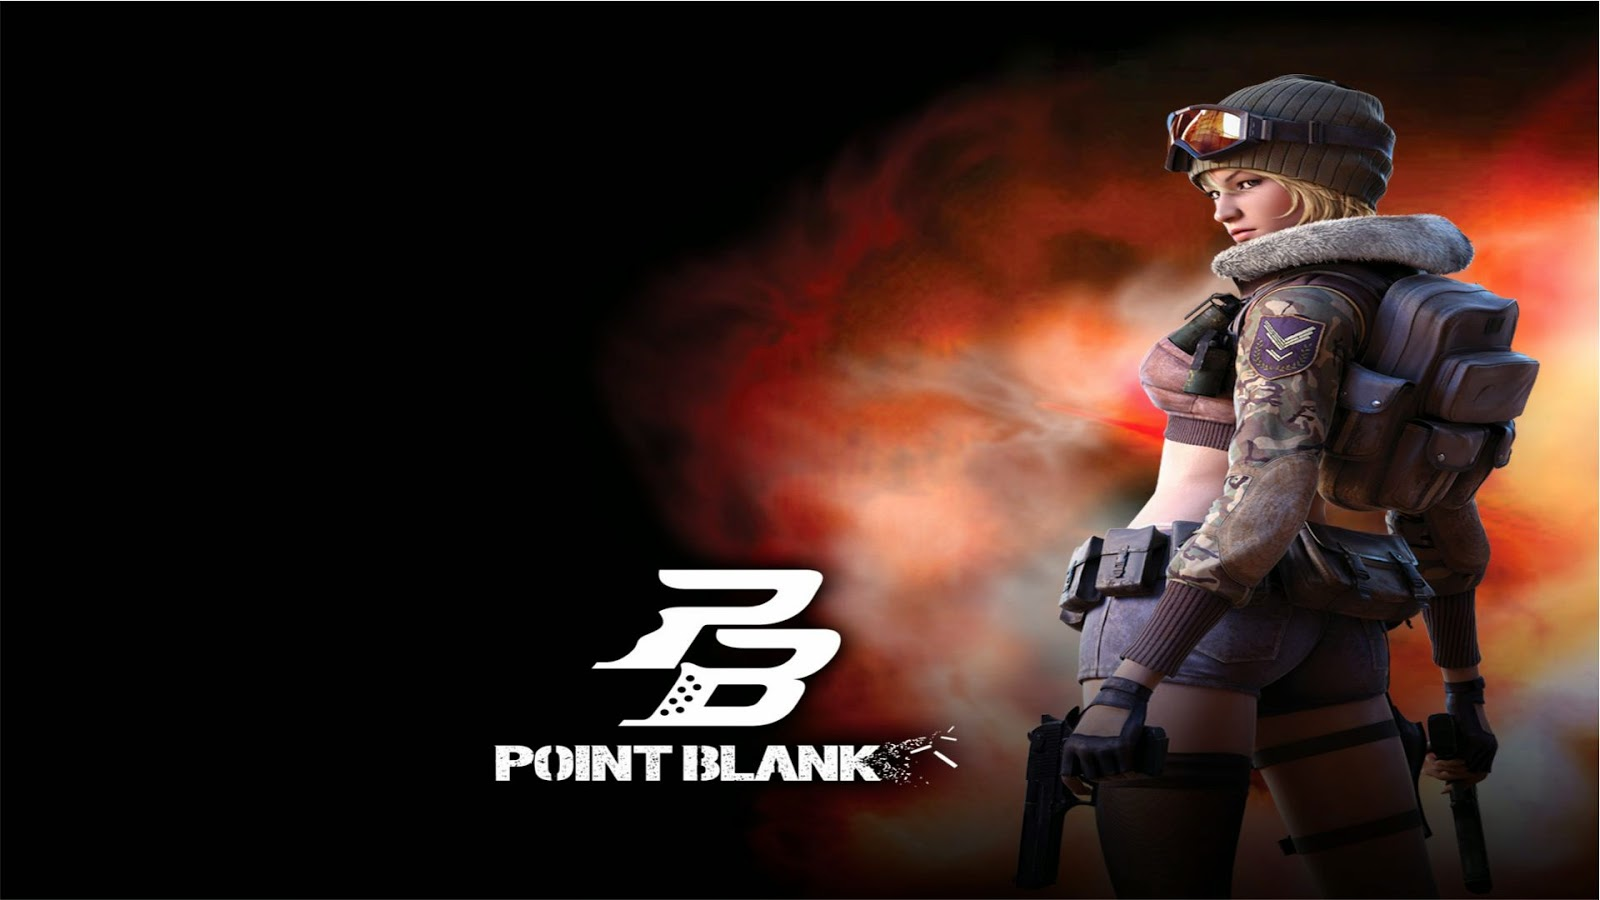 Wallpaper Point Blank HD